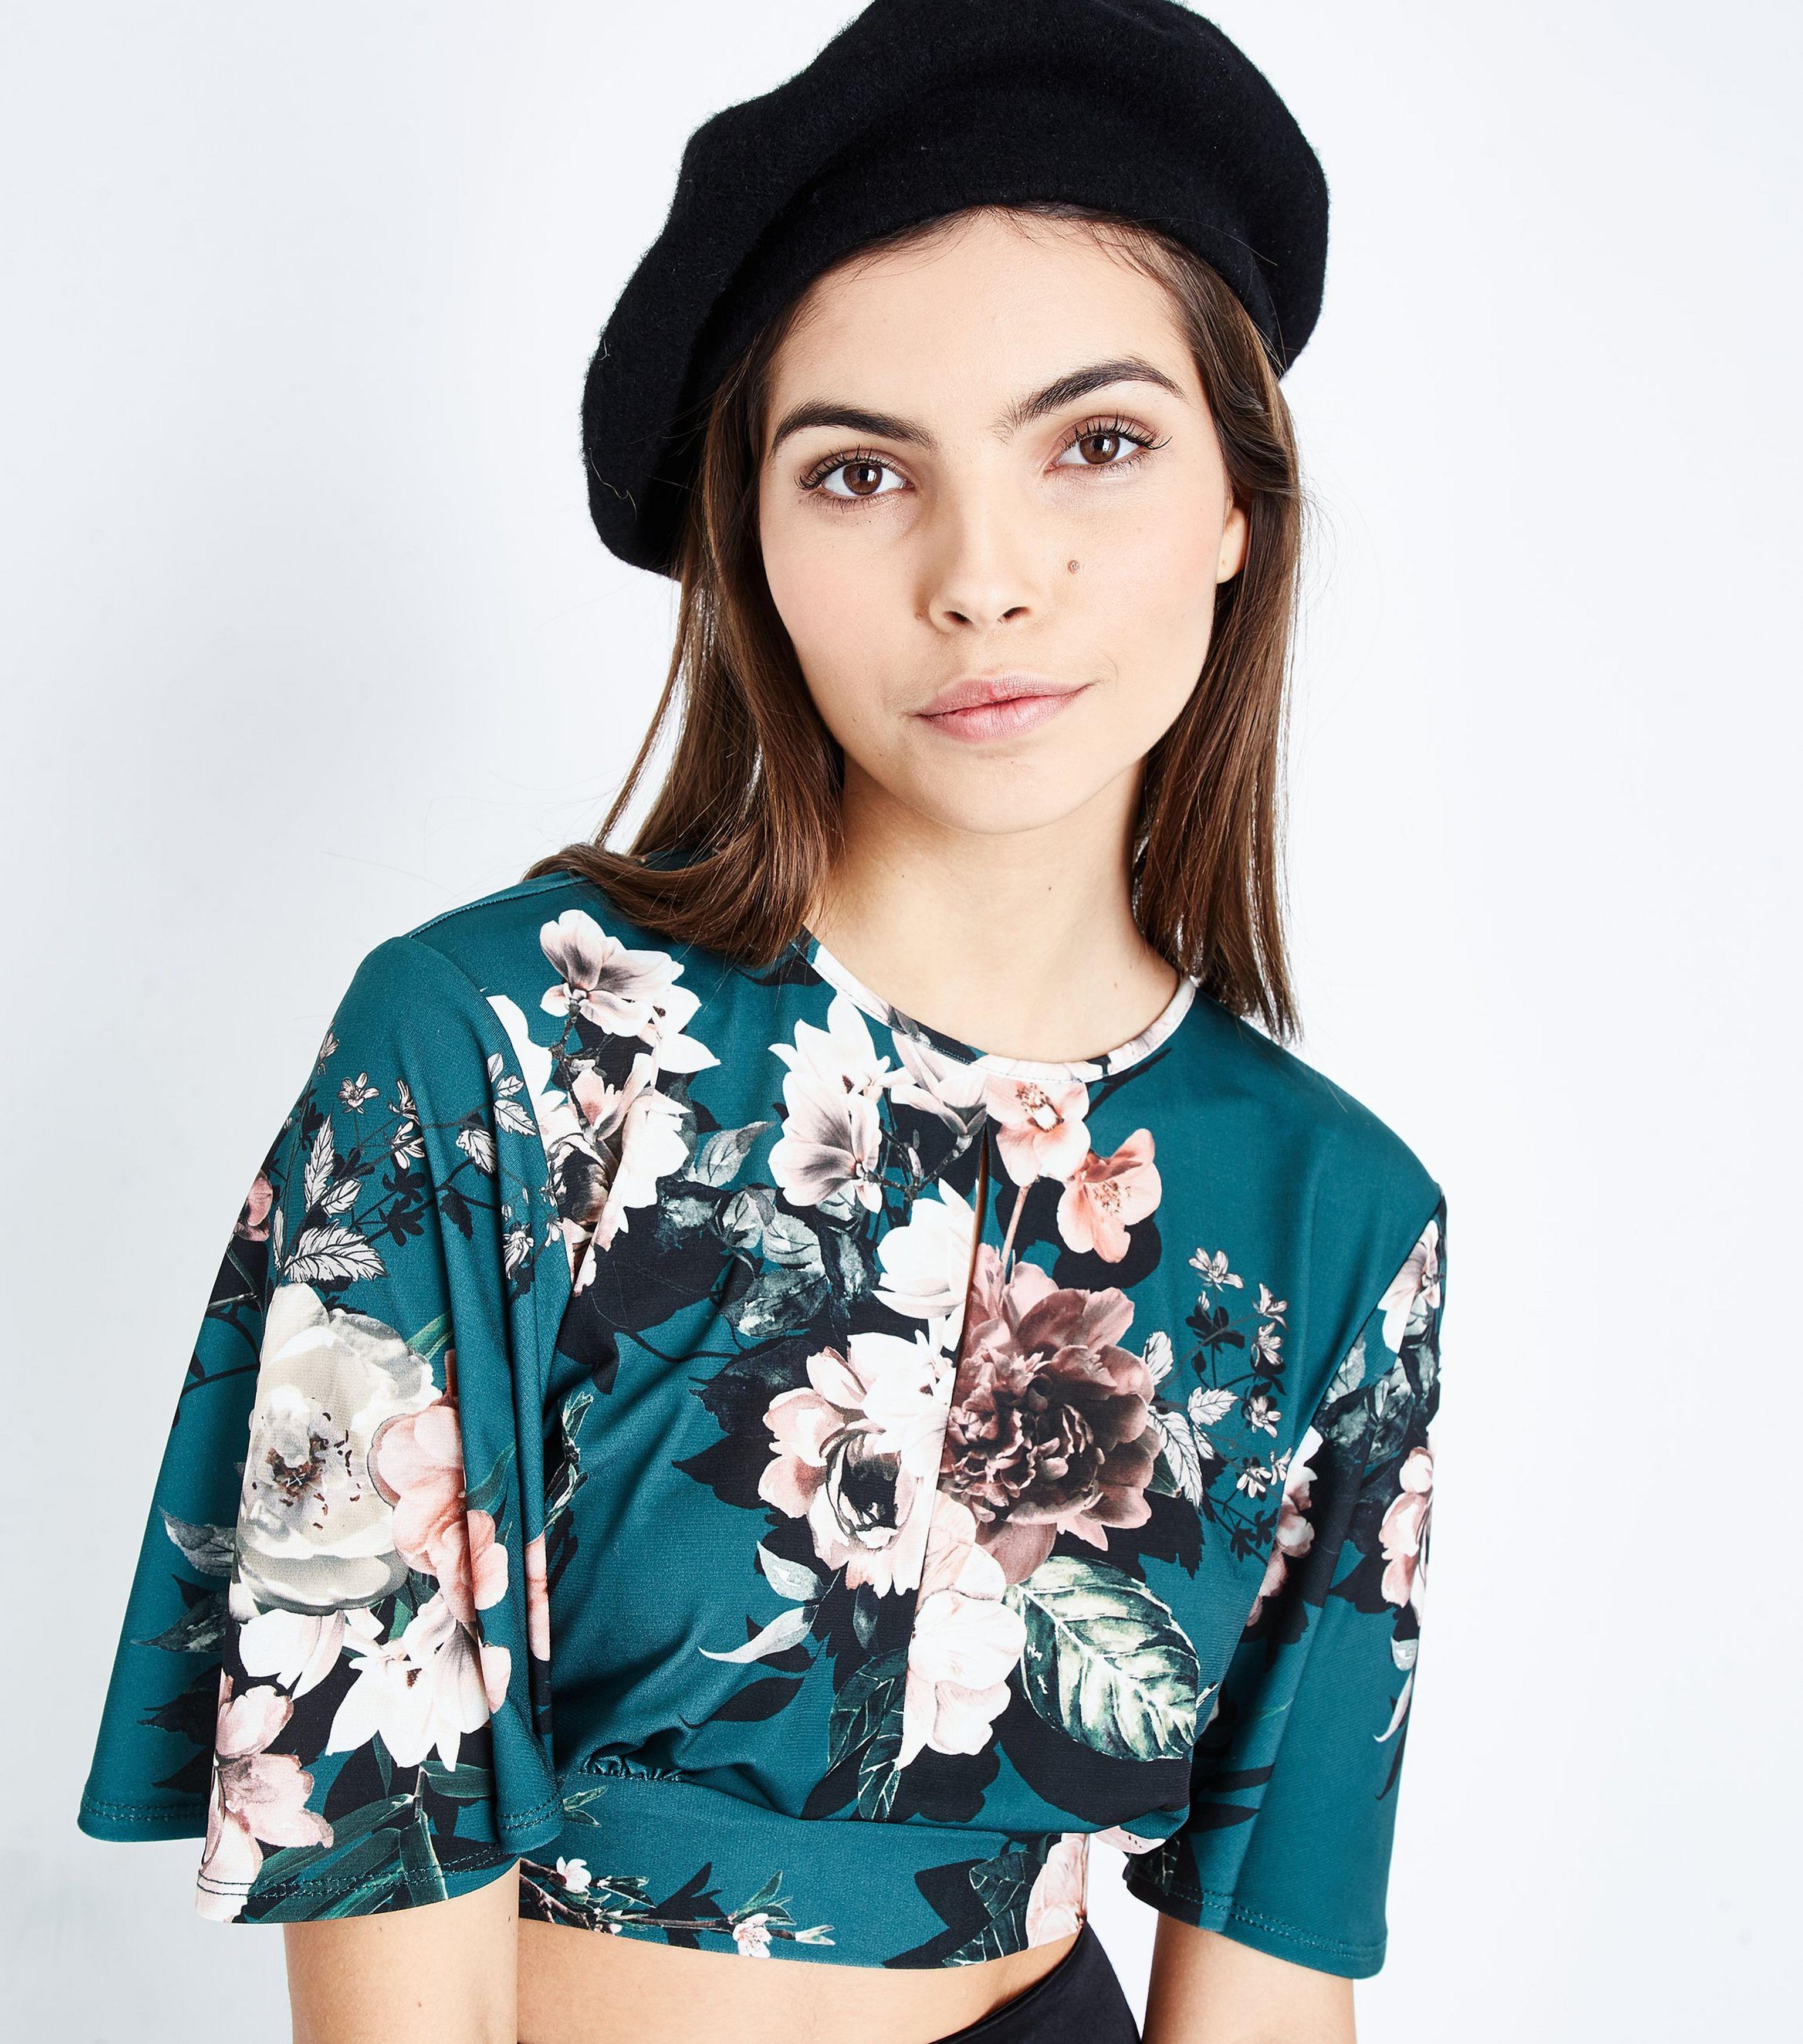 b2c1db28956 New Look Green Floral Keyhole Crop Top in Green - Lyst